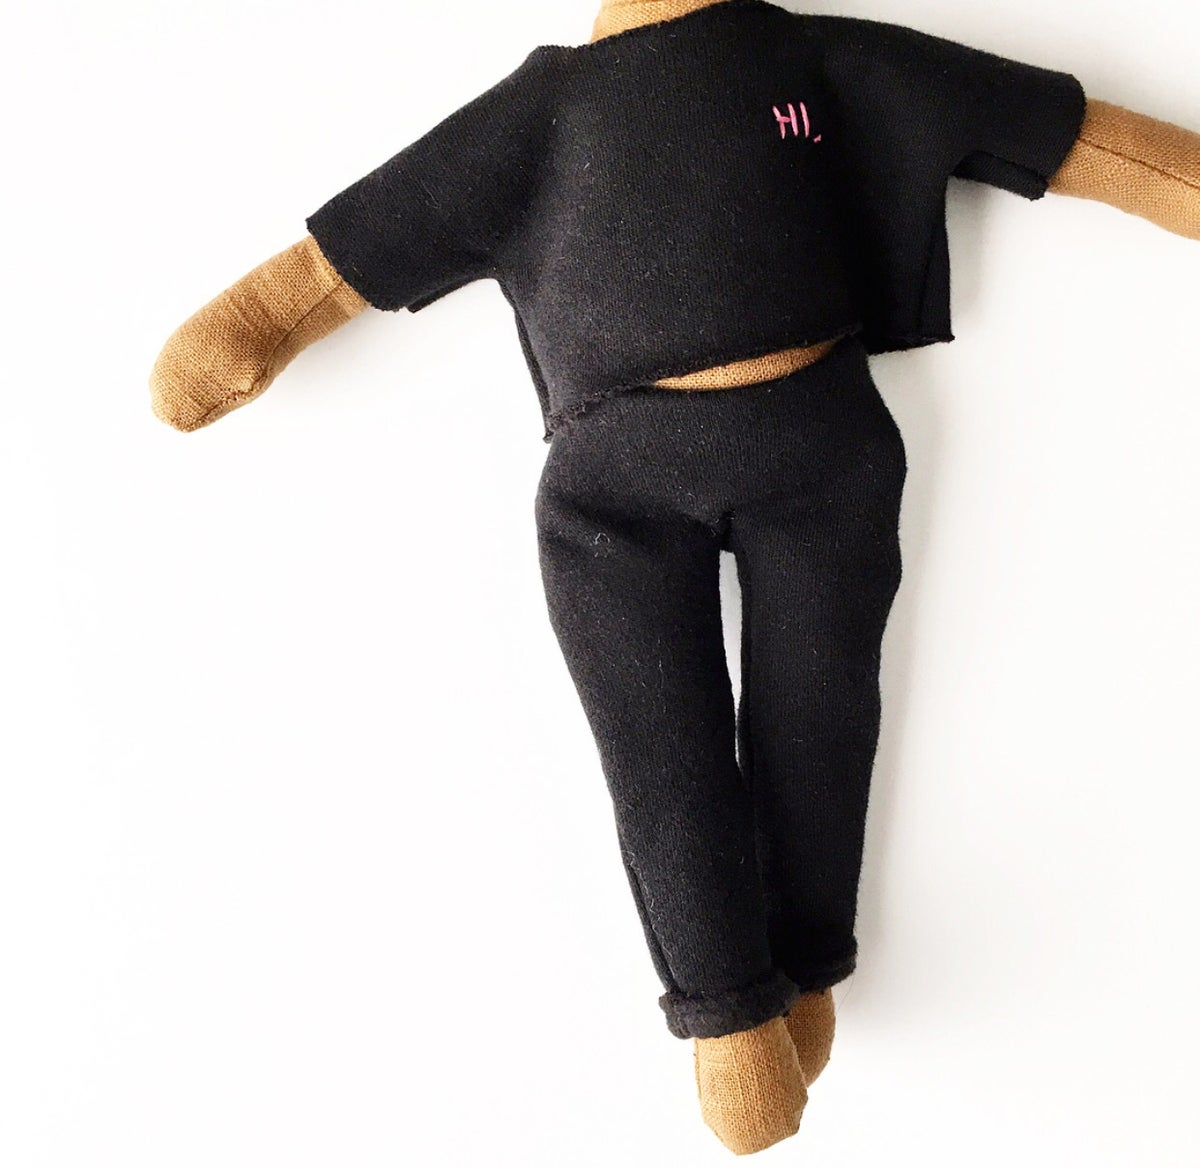 Black raw cut HI. sweatsuit - 2pc doll accessory (PLEASE NOTE: THIS ORDER WILL SHIP ON OR BEFORE NOV